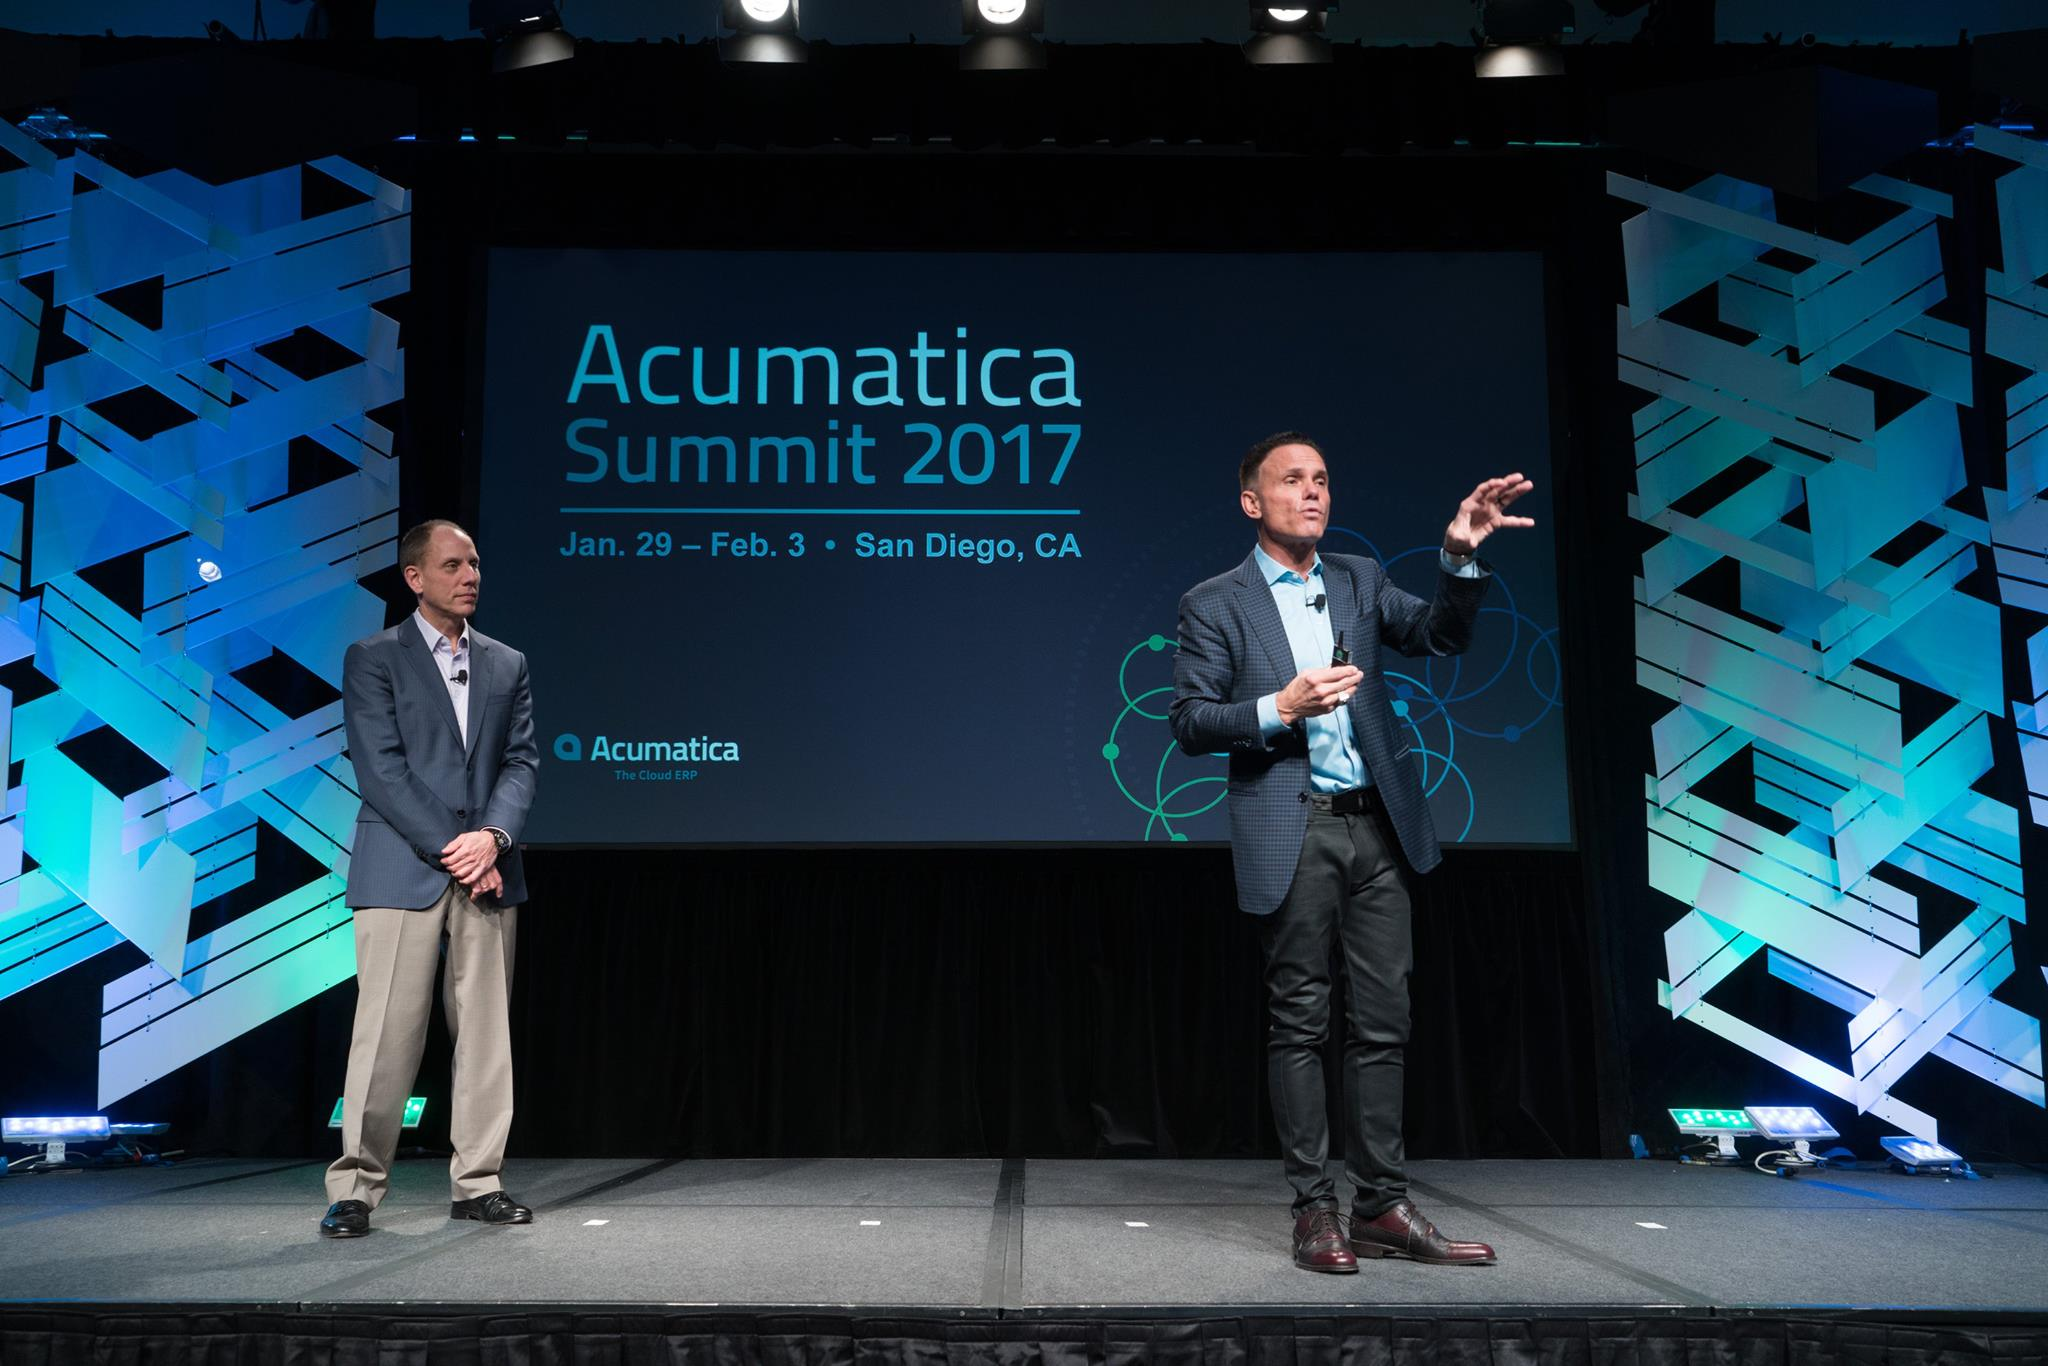 Acumatica CEO Jon Roskill and Kevin Harrington